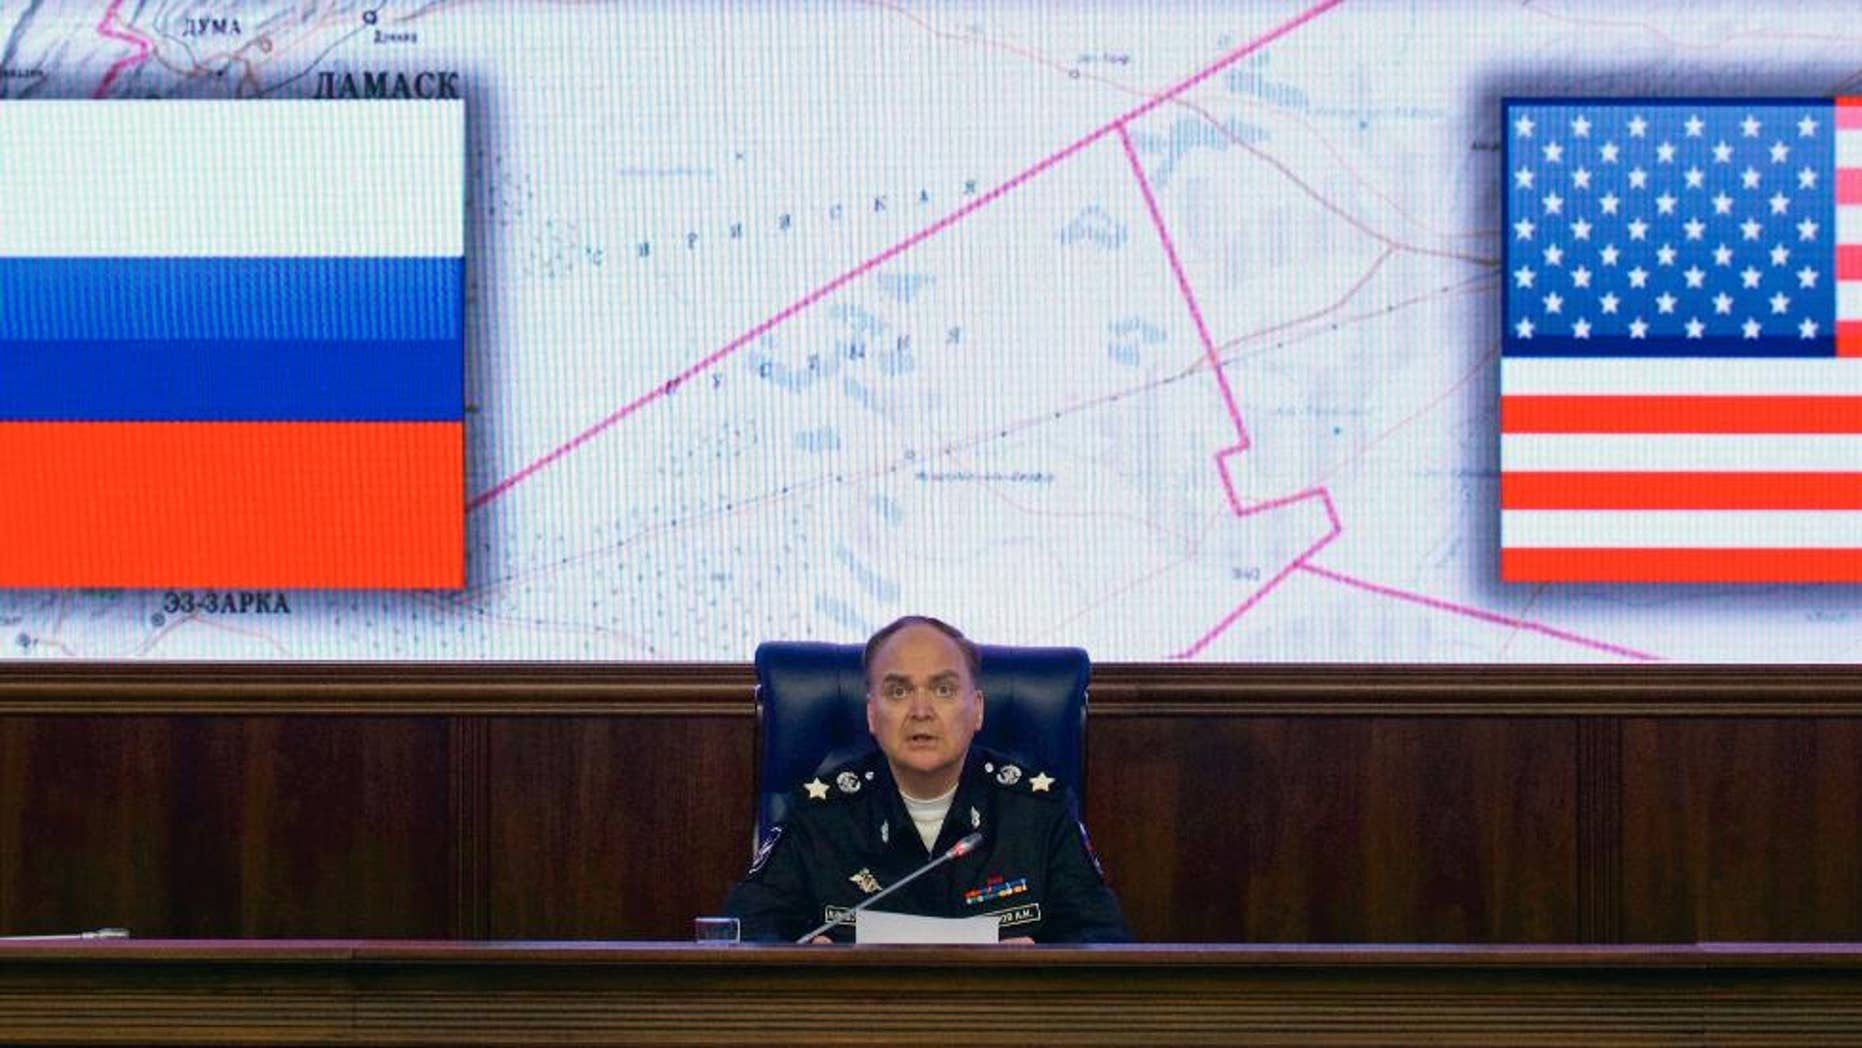 FILE - In this file photo dated Friday, Oct. 7, 2016, Russian Deputy Defense Minister Anatoly Antonov speaks during a media briefing in the Defense Ministry in Moscow.  While Western media are filled with grim images of life in areas of Aleppo under siege by Russian-backed Syrian government forces, Russian news reports tell a very different story. (AP Photo/Ivan Sekretarev, File)